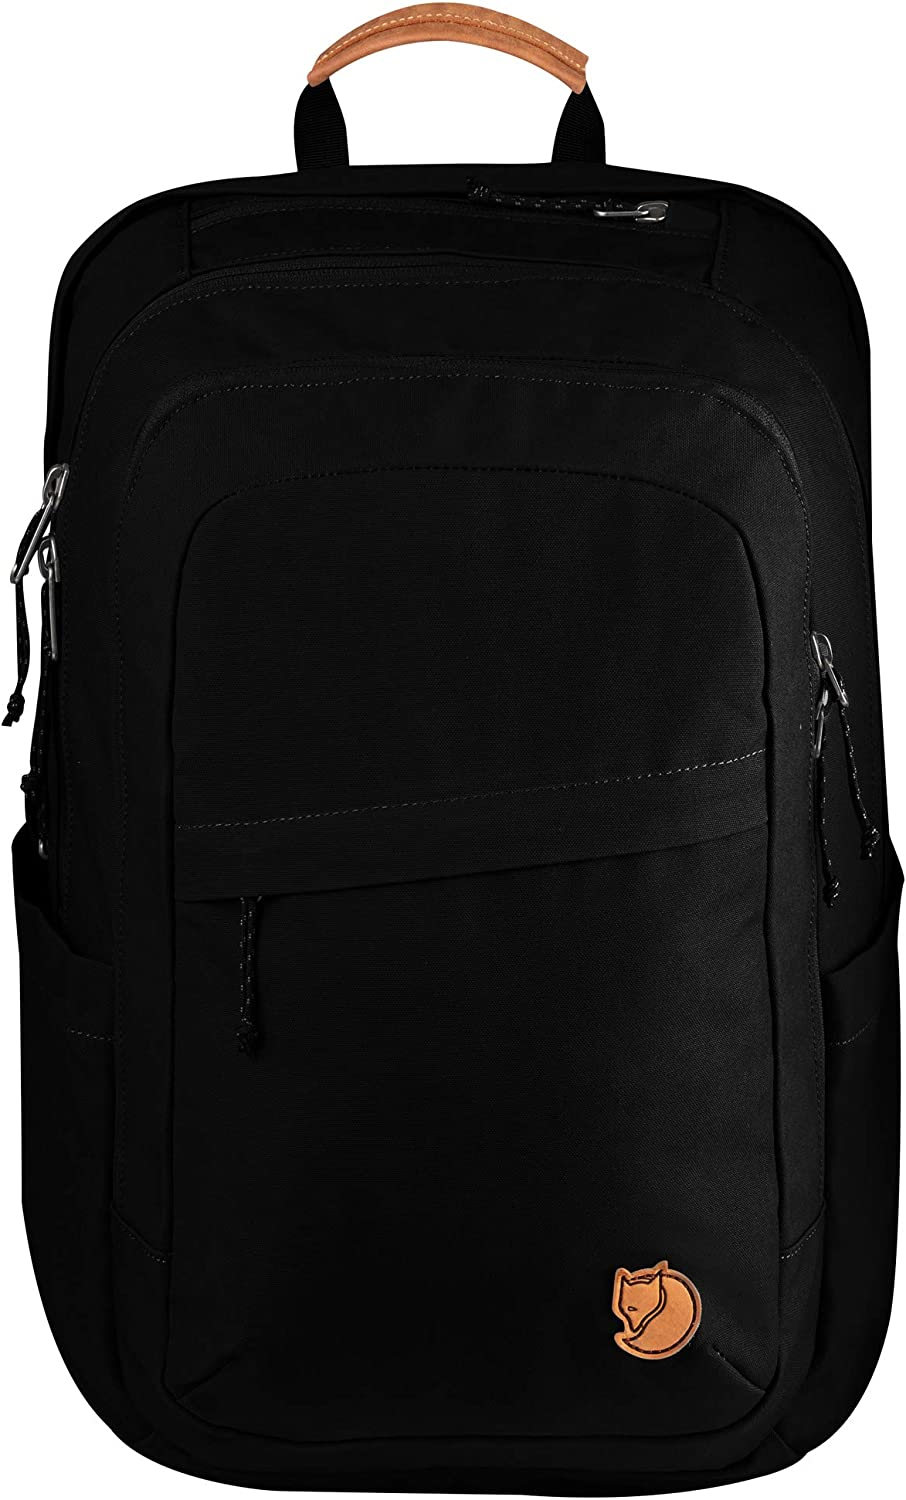 "Fjallraven, Raven 28 Backpack, Fits 15"" Laptops"